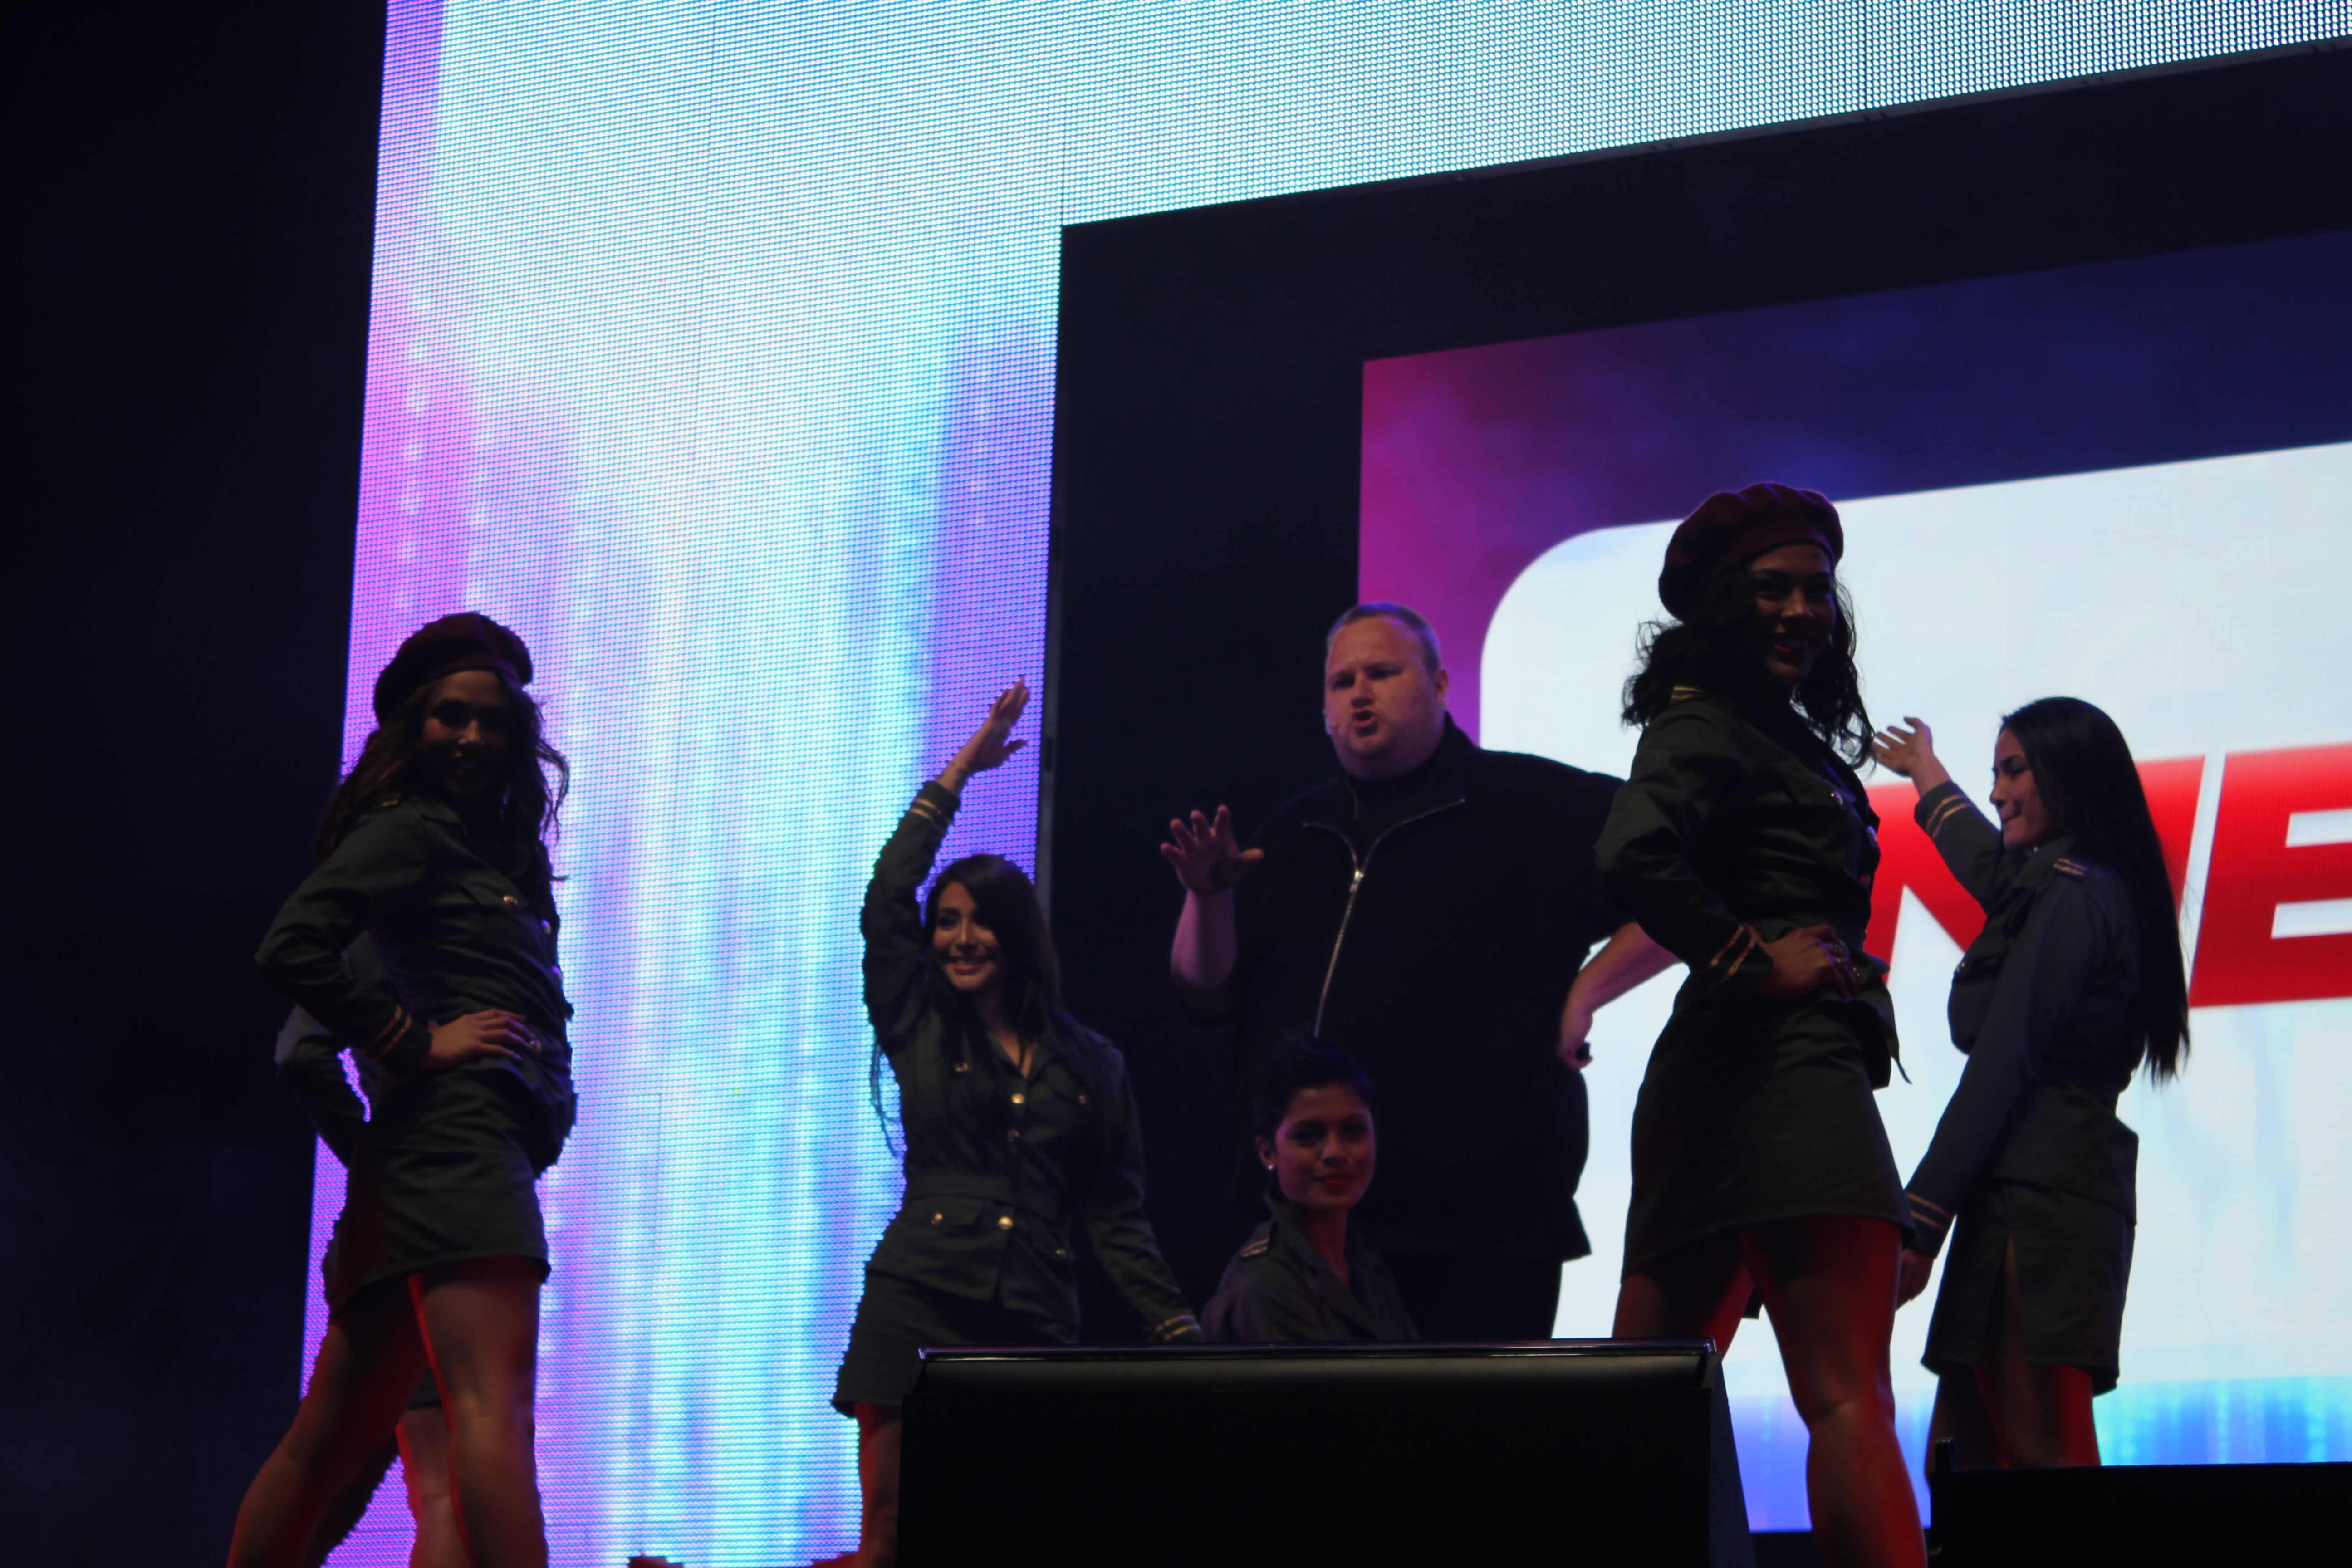 babews Mega hits 1 million users after one day as Kim Dotcom officially launches the service